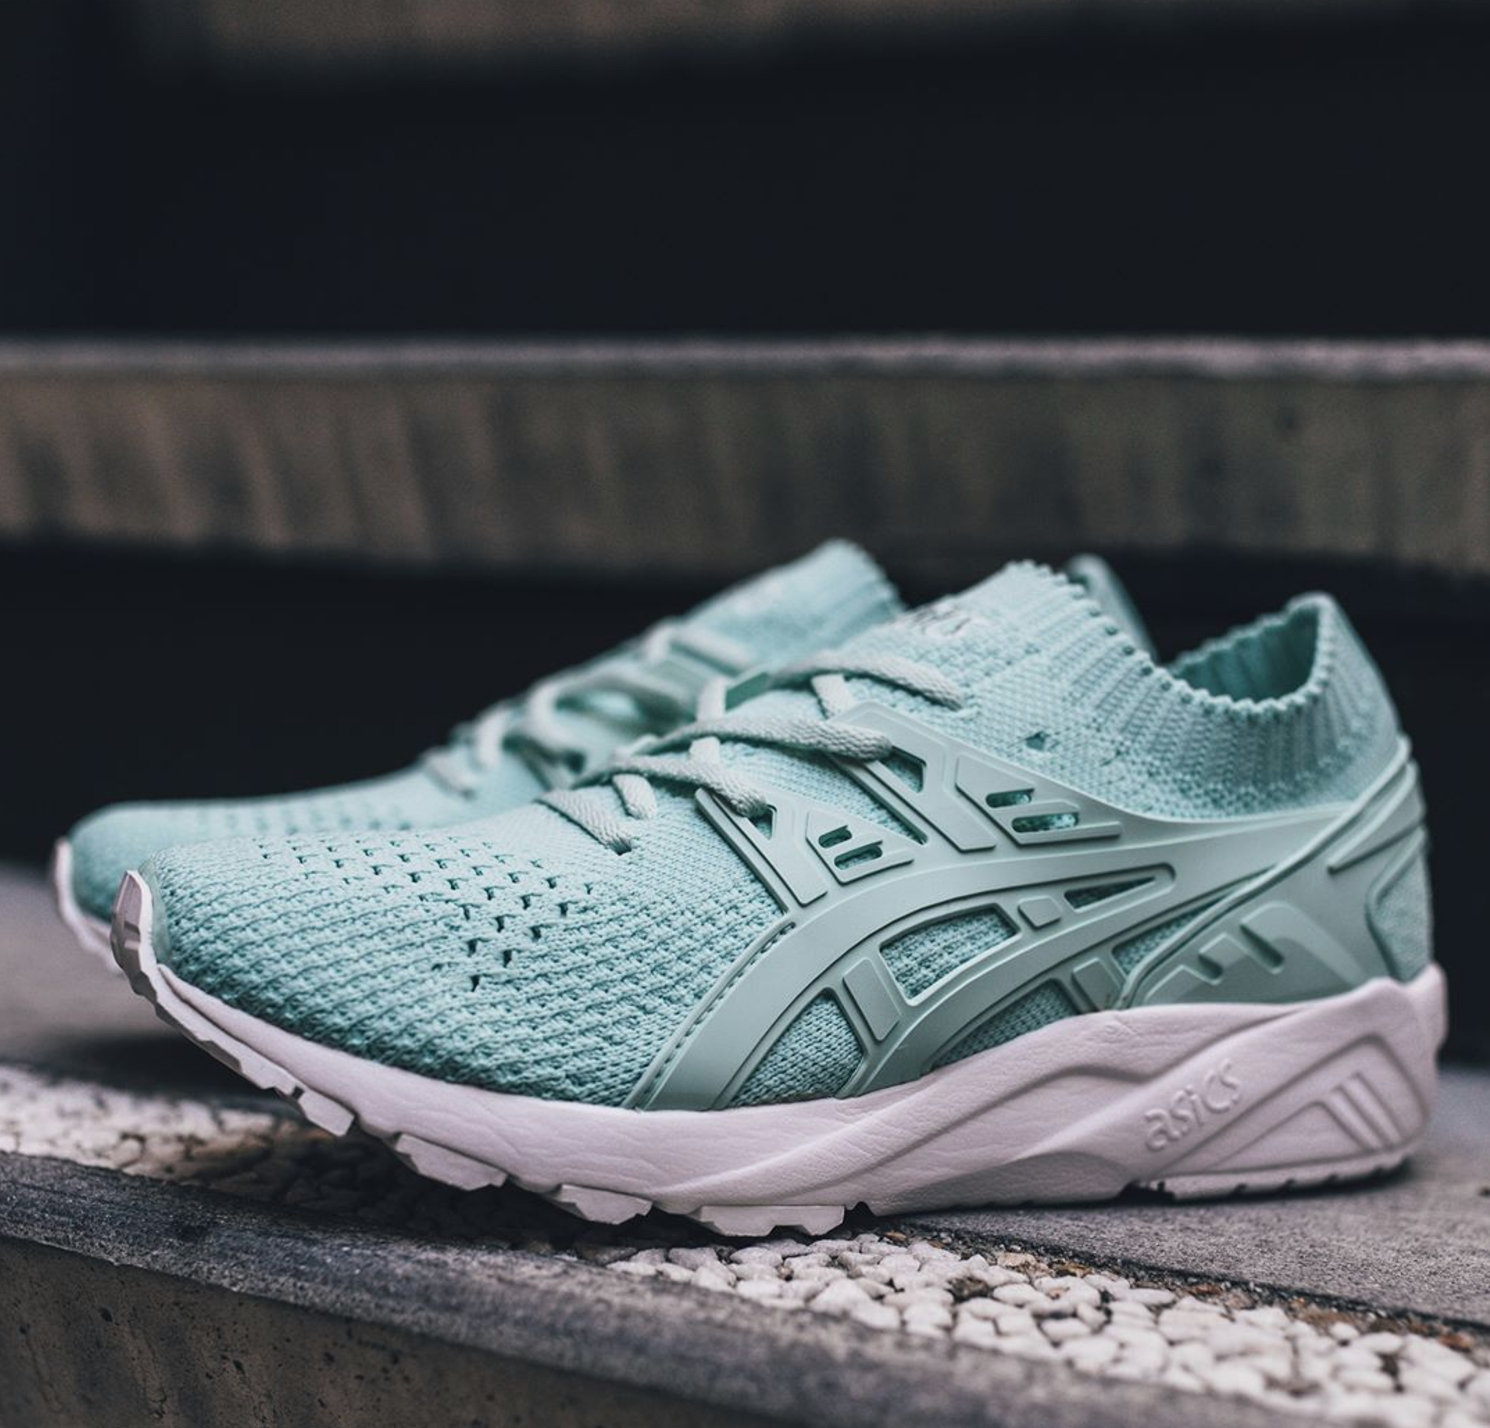 d3a746a875b3d New Asics Gel-Kayano Trainer Knit Colorways Drop for Men and Women ...